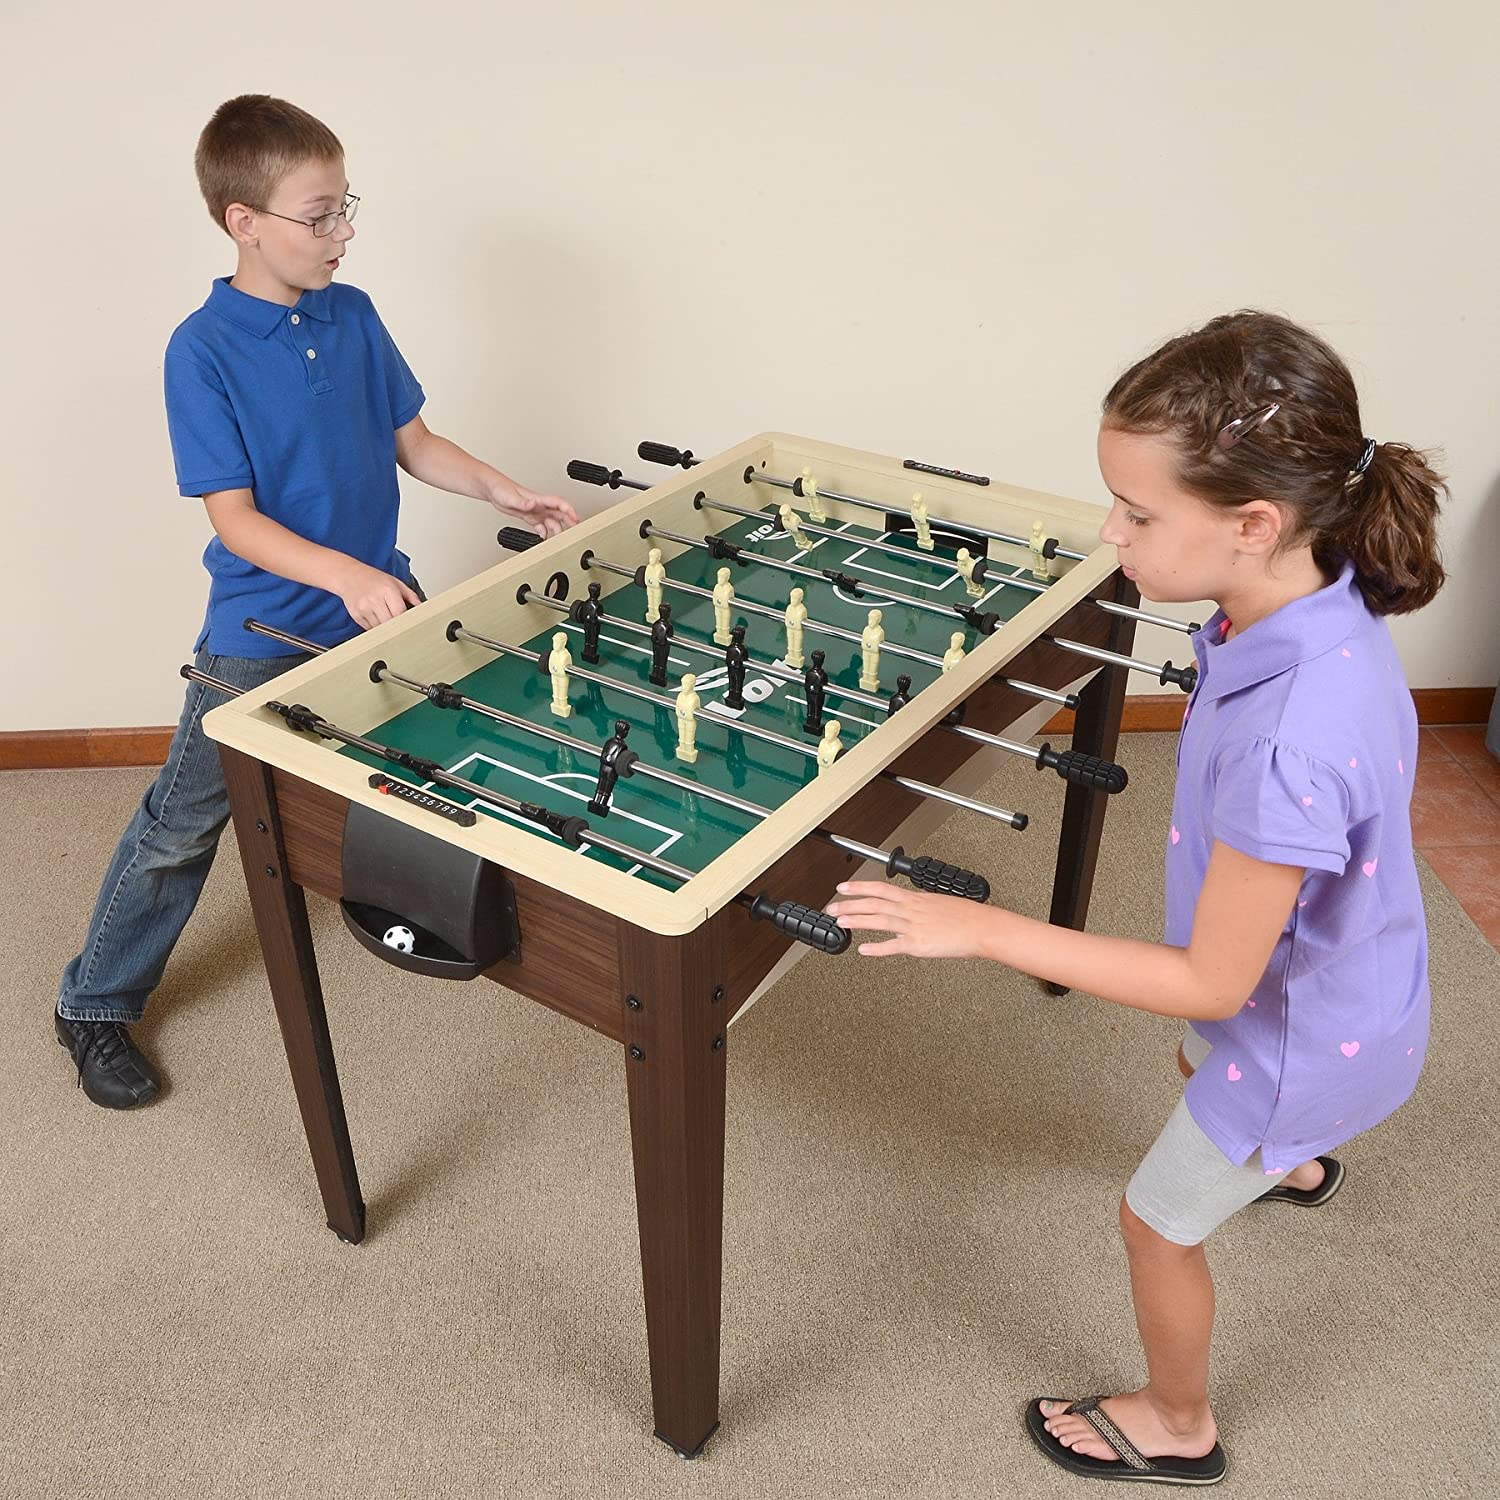 Great Amazon.com : Voit Free Kick Foosball Table, 48 Inch : Sports U0026 Outdoors